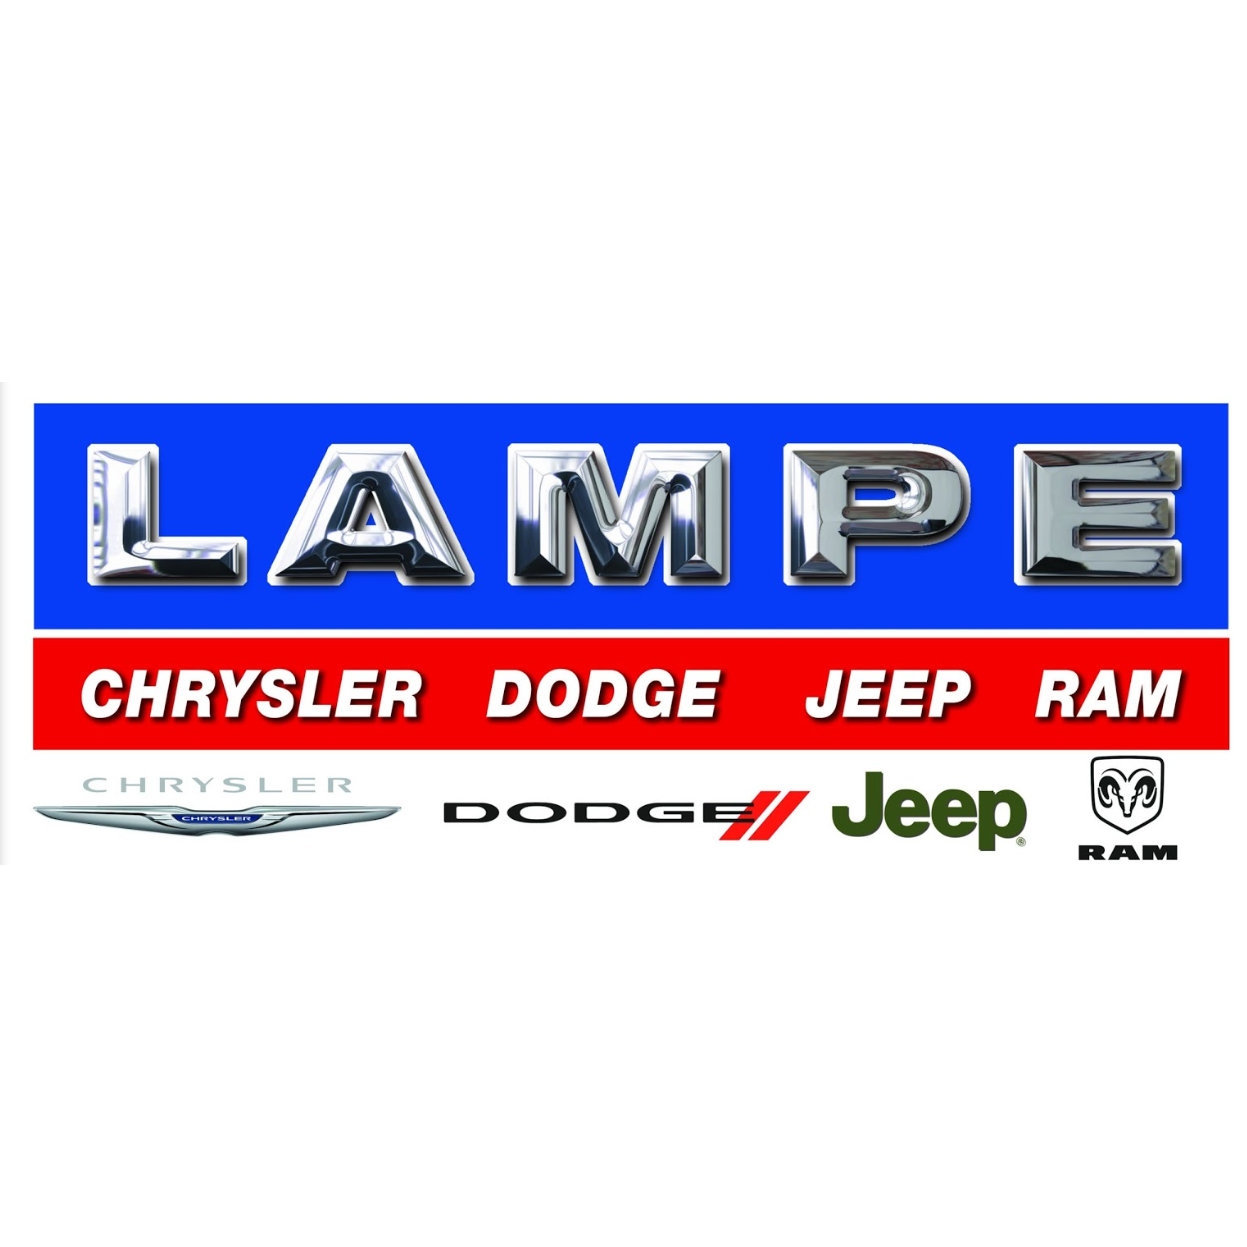 Lampe Chrysler Dodge Jeep Ram FIAT At 151 Neeley Rd